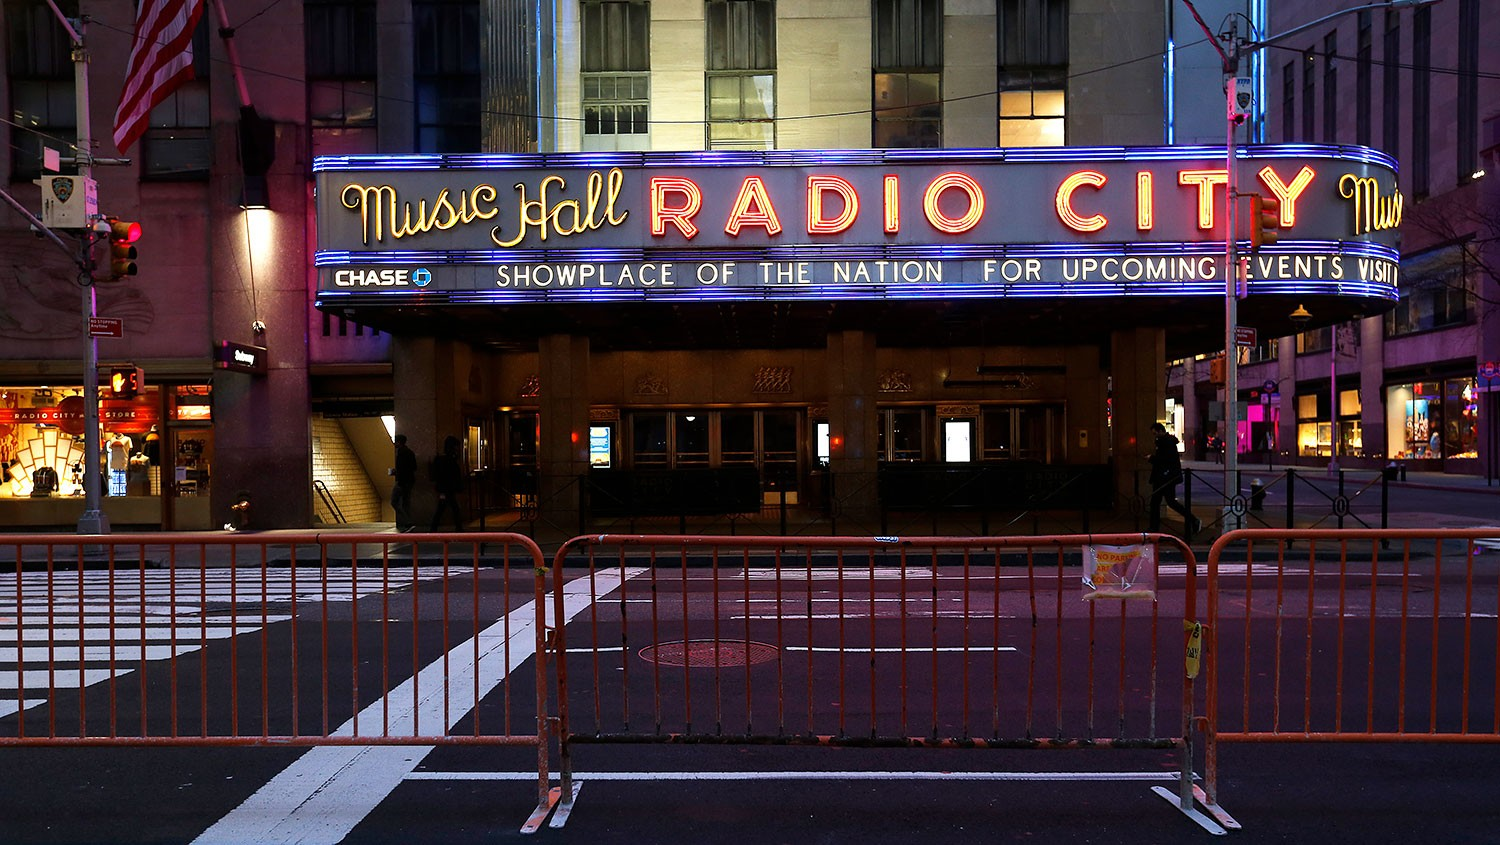 Covid19 Radio City Music Hall